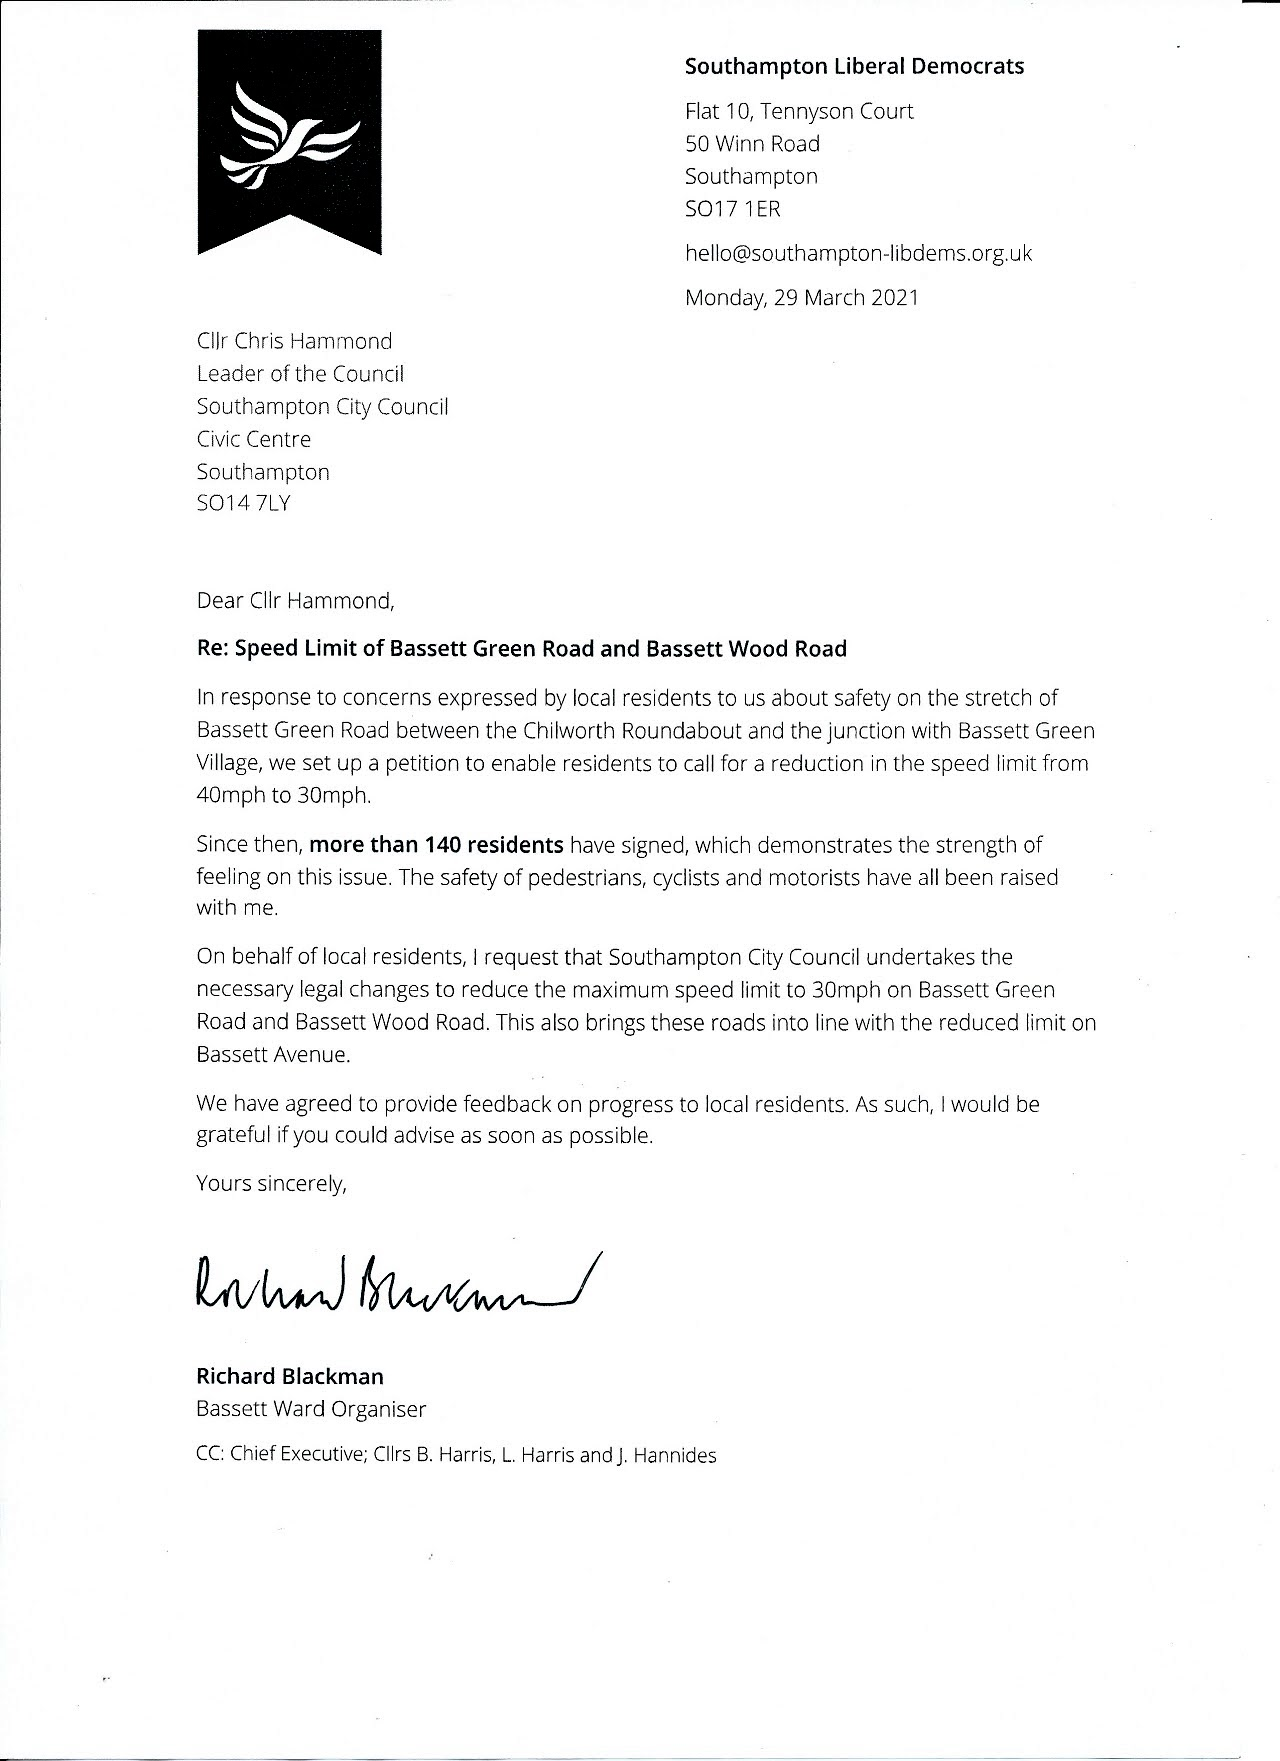 Dear Cllr Hammond, In response to concerns expressed by local residents to us about safety on the stretch of Bassett Green Road between the Chilworth Roundabout and the junction of Bassett Green Village, we set up a petition to enable residents to call for a reduction in the speed limit from 40mph to 30mph. Since then, more than 140 residents have signed, which demonstrates the strength of feeling on this issue. The safety of pedestrians, cyclists and motorists have all been raised with me. On behalf of local residents, I request that Southampton City Council undertakes the necessary legal changes to reduce the maximum speed limit to 30mph on Bassett Green Road and Bassett Wood Road. This also brings these roads into line with the reduced speed limit on Bassett Avenue. We have agreed to provide feedback on progress to local residents. As such, I would be grateful if you could advise as soon as possible. Yours sincerely, Richard Blackman. CC: Southampton City Council Chief Executive; Cllrs B Harris, L Harris and J Hannides.